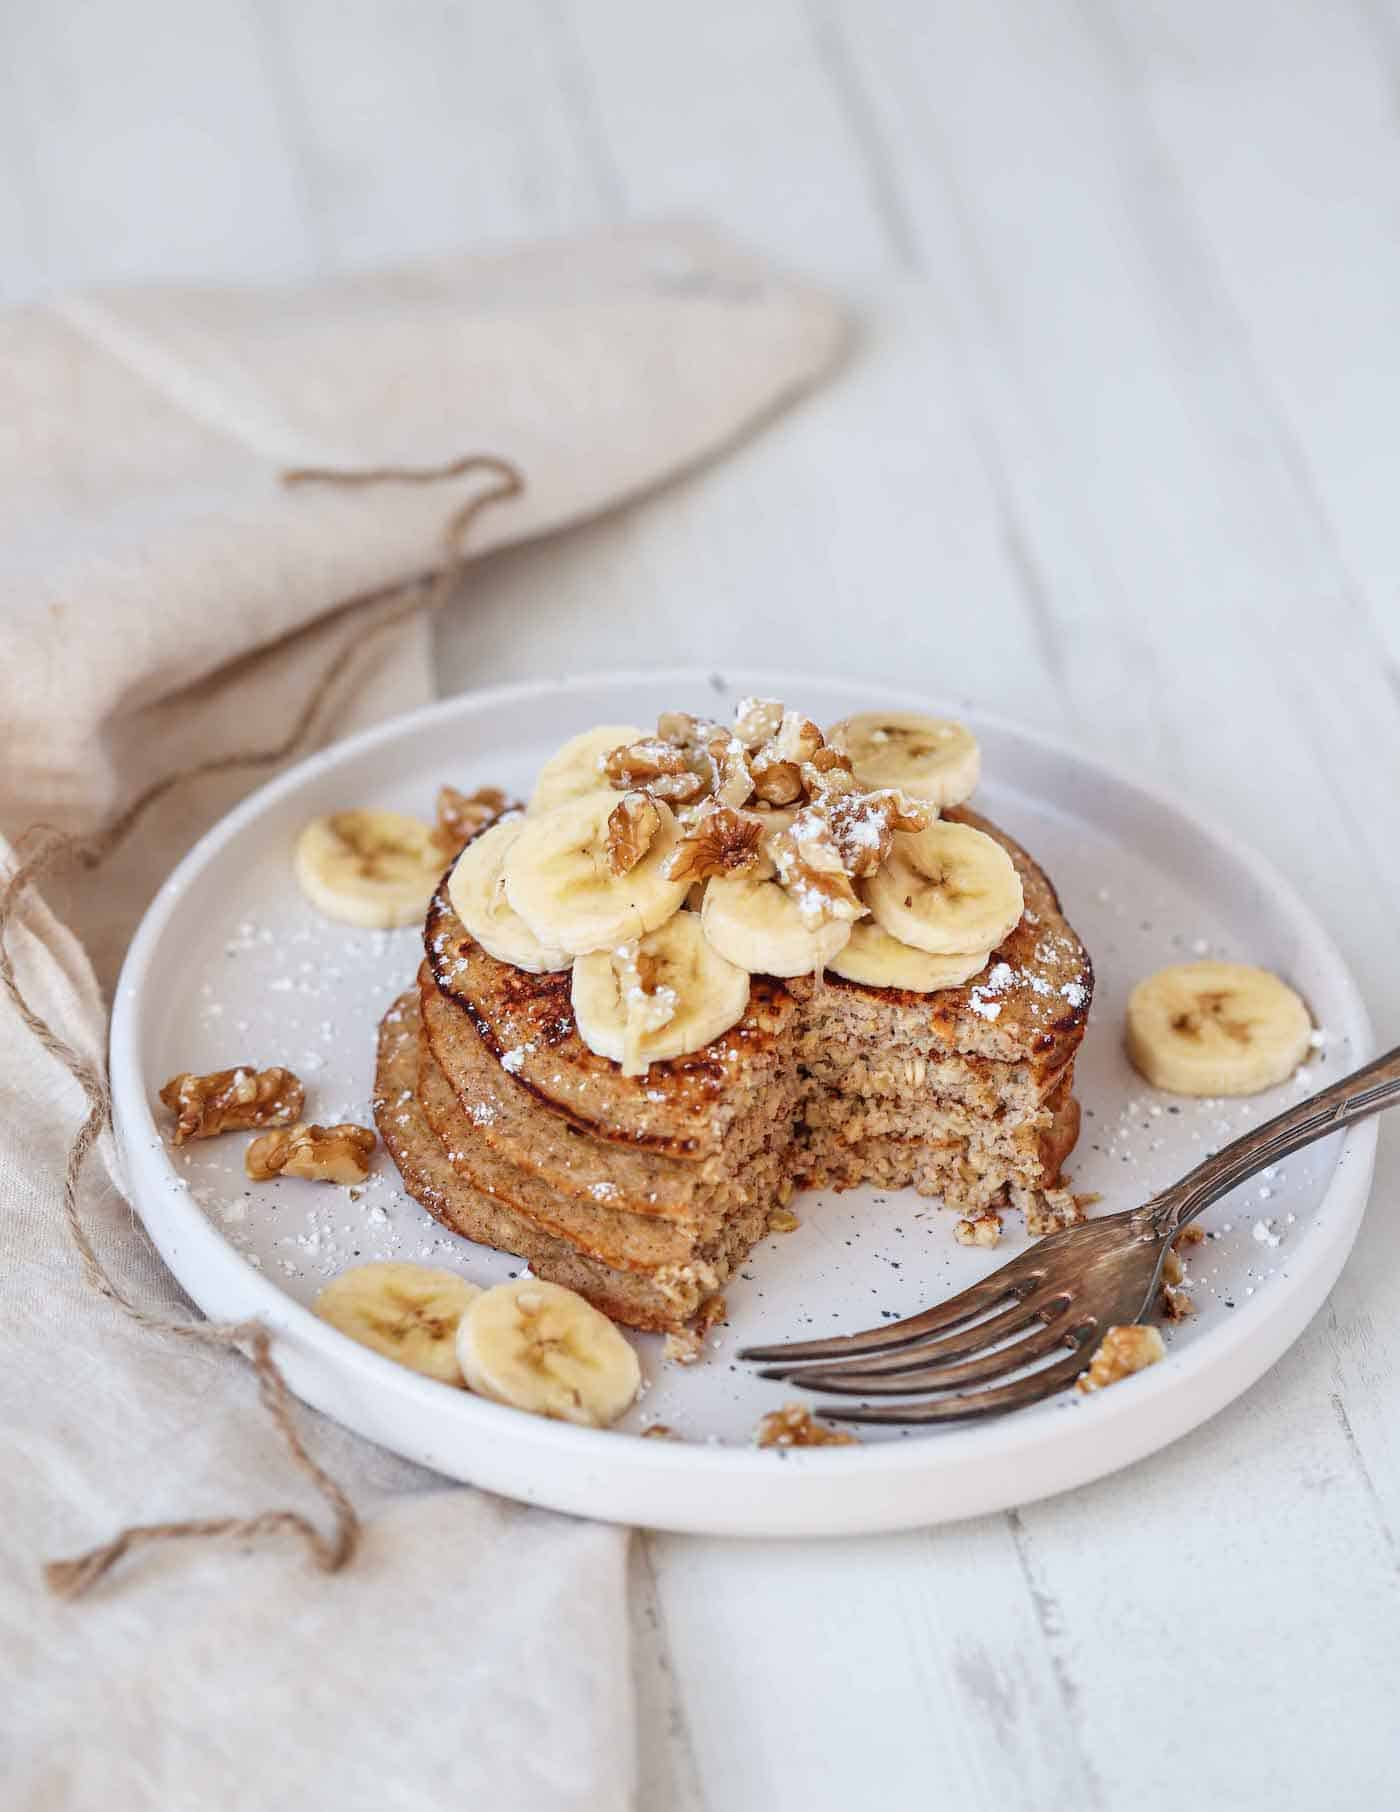 protein pancakes topped with banana slices